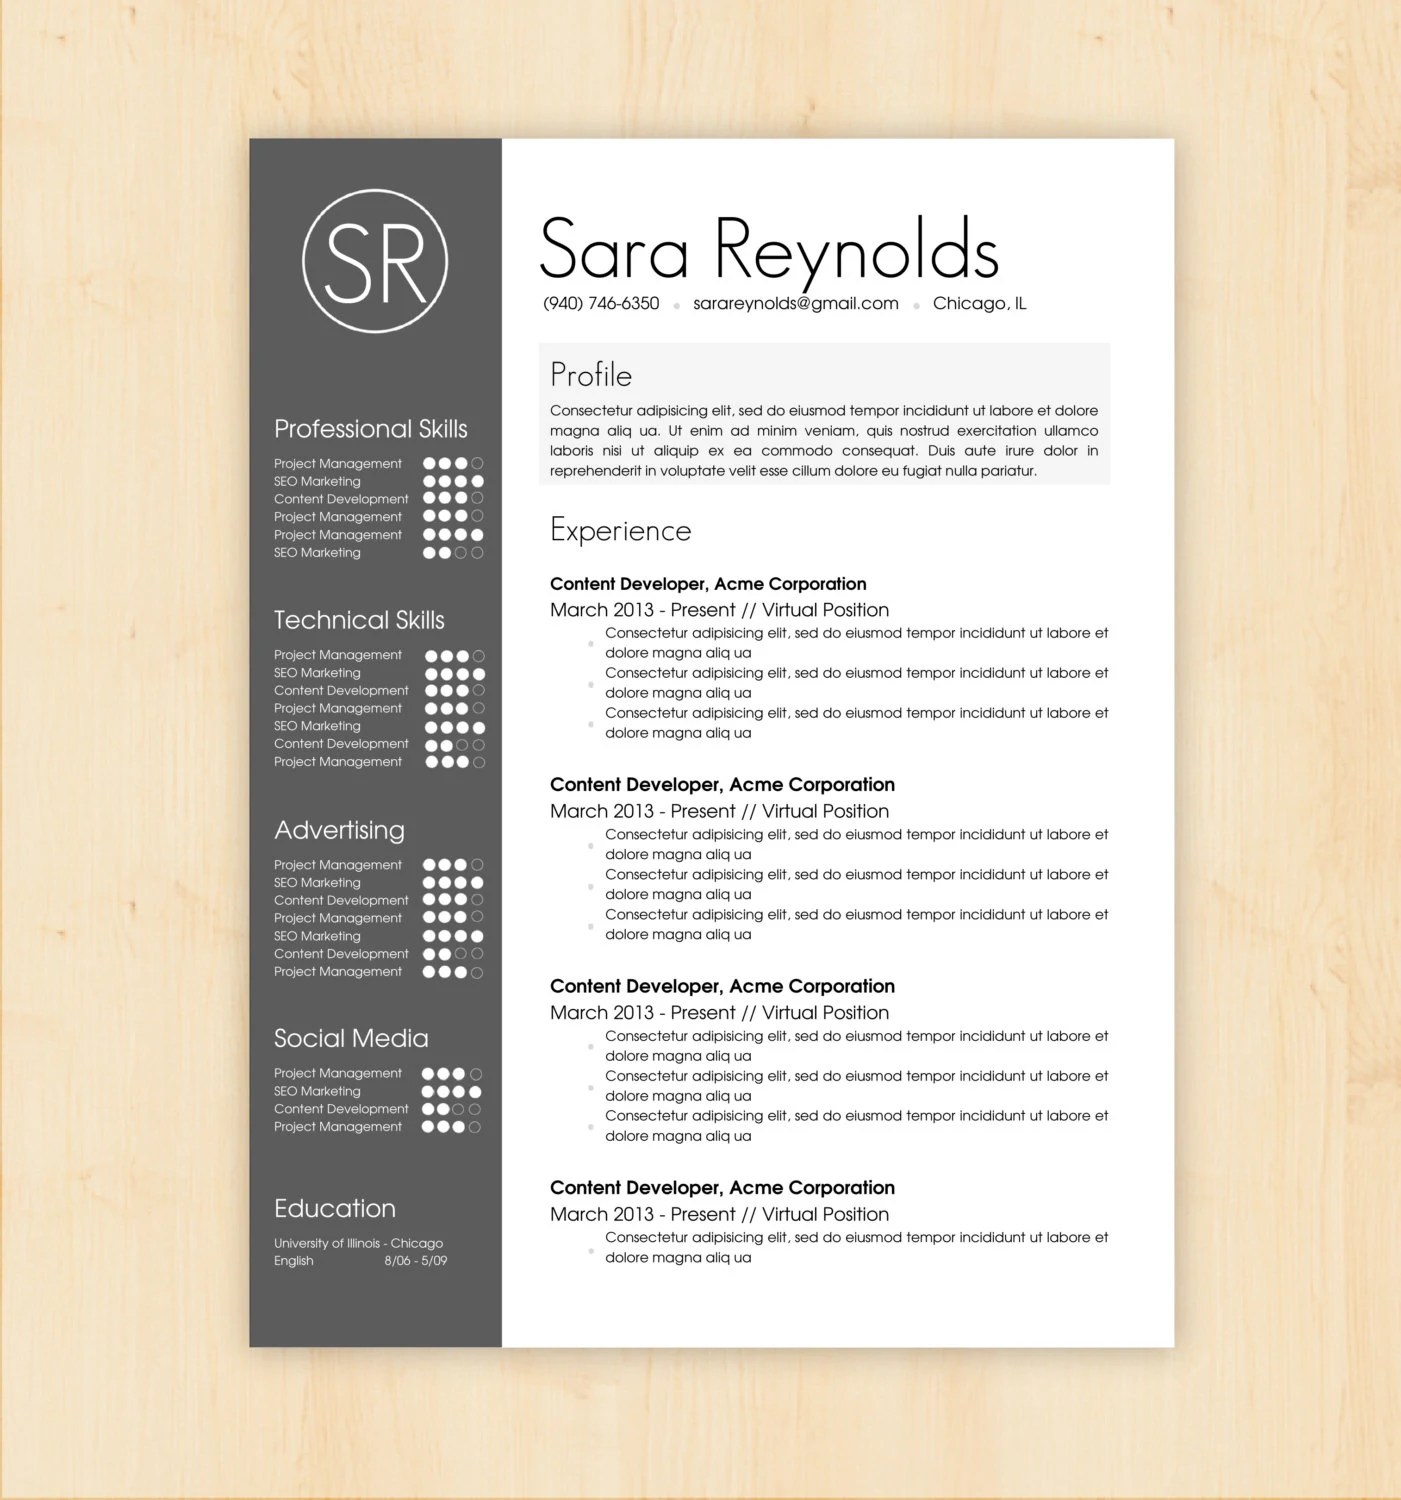 cv format for job in ms word best online resume cv format for job in ms word cv template collection 116 templates in